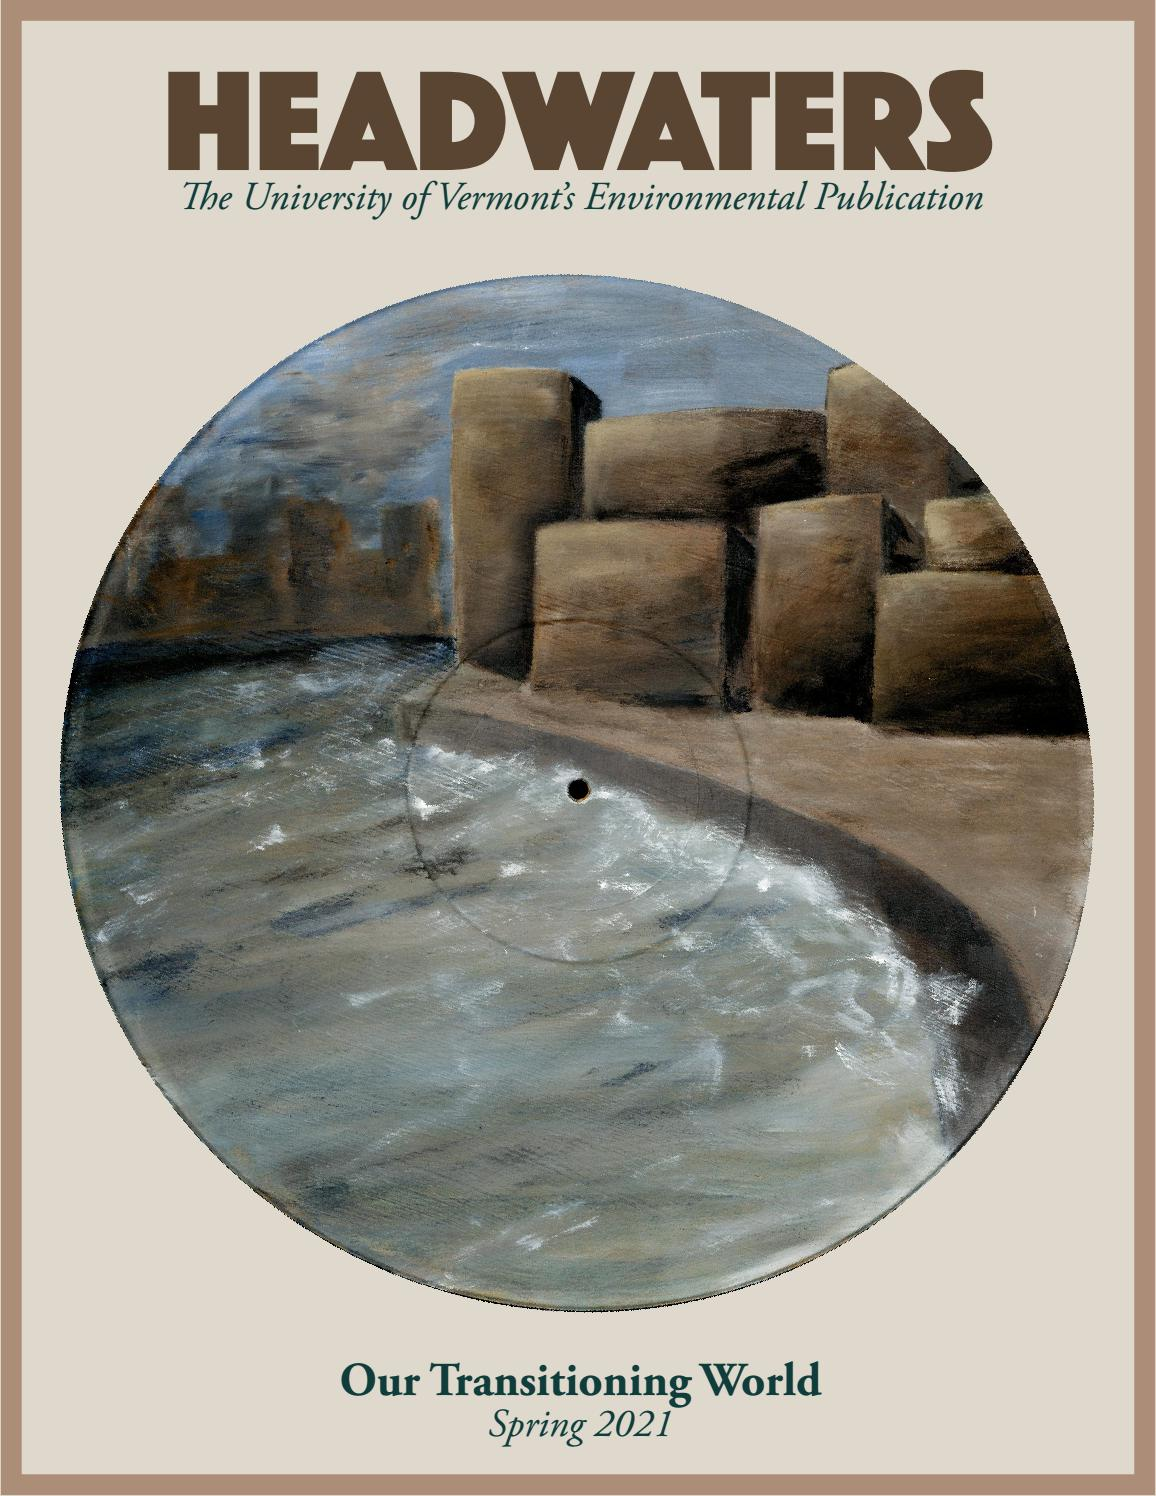 Headwaters Magazine Spring 21 by UVM Headwaters   issuu